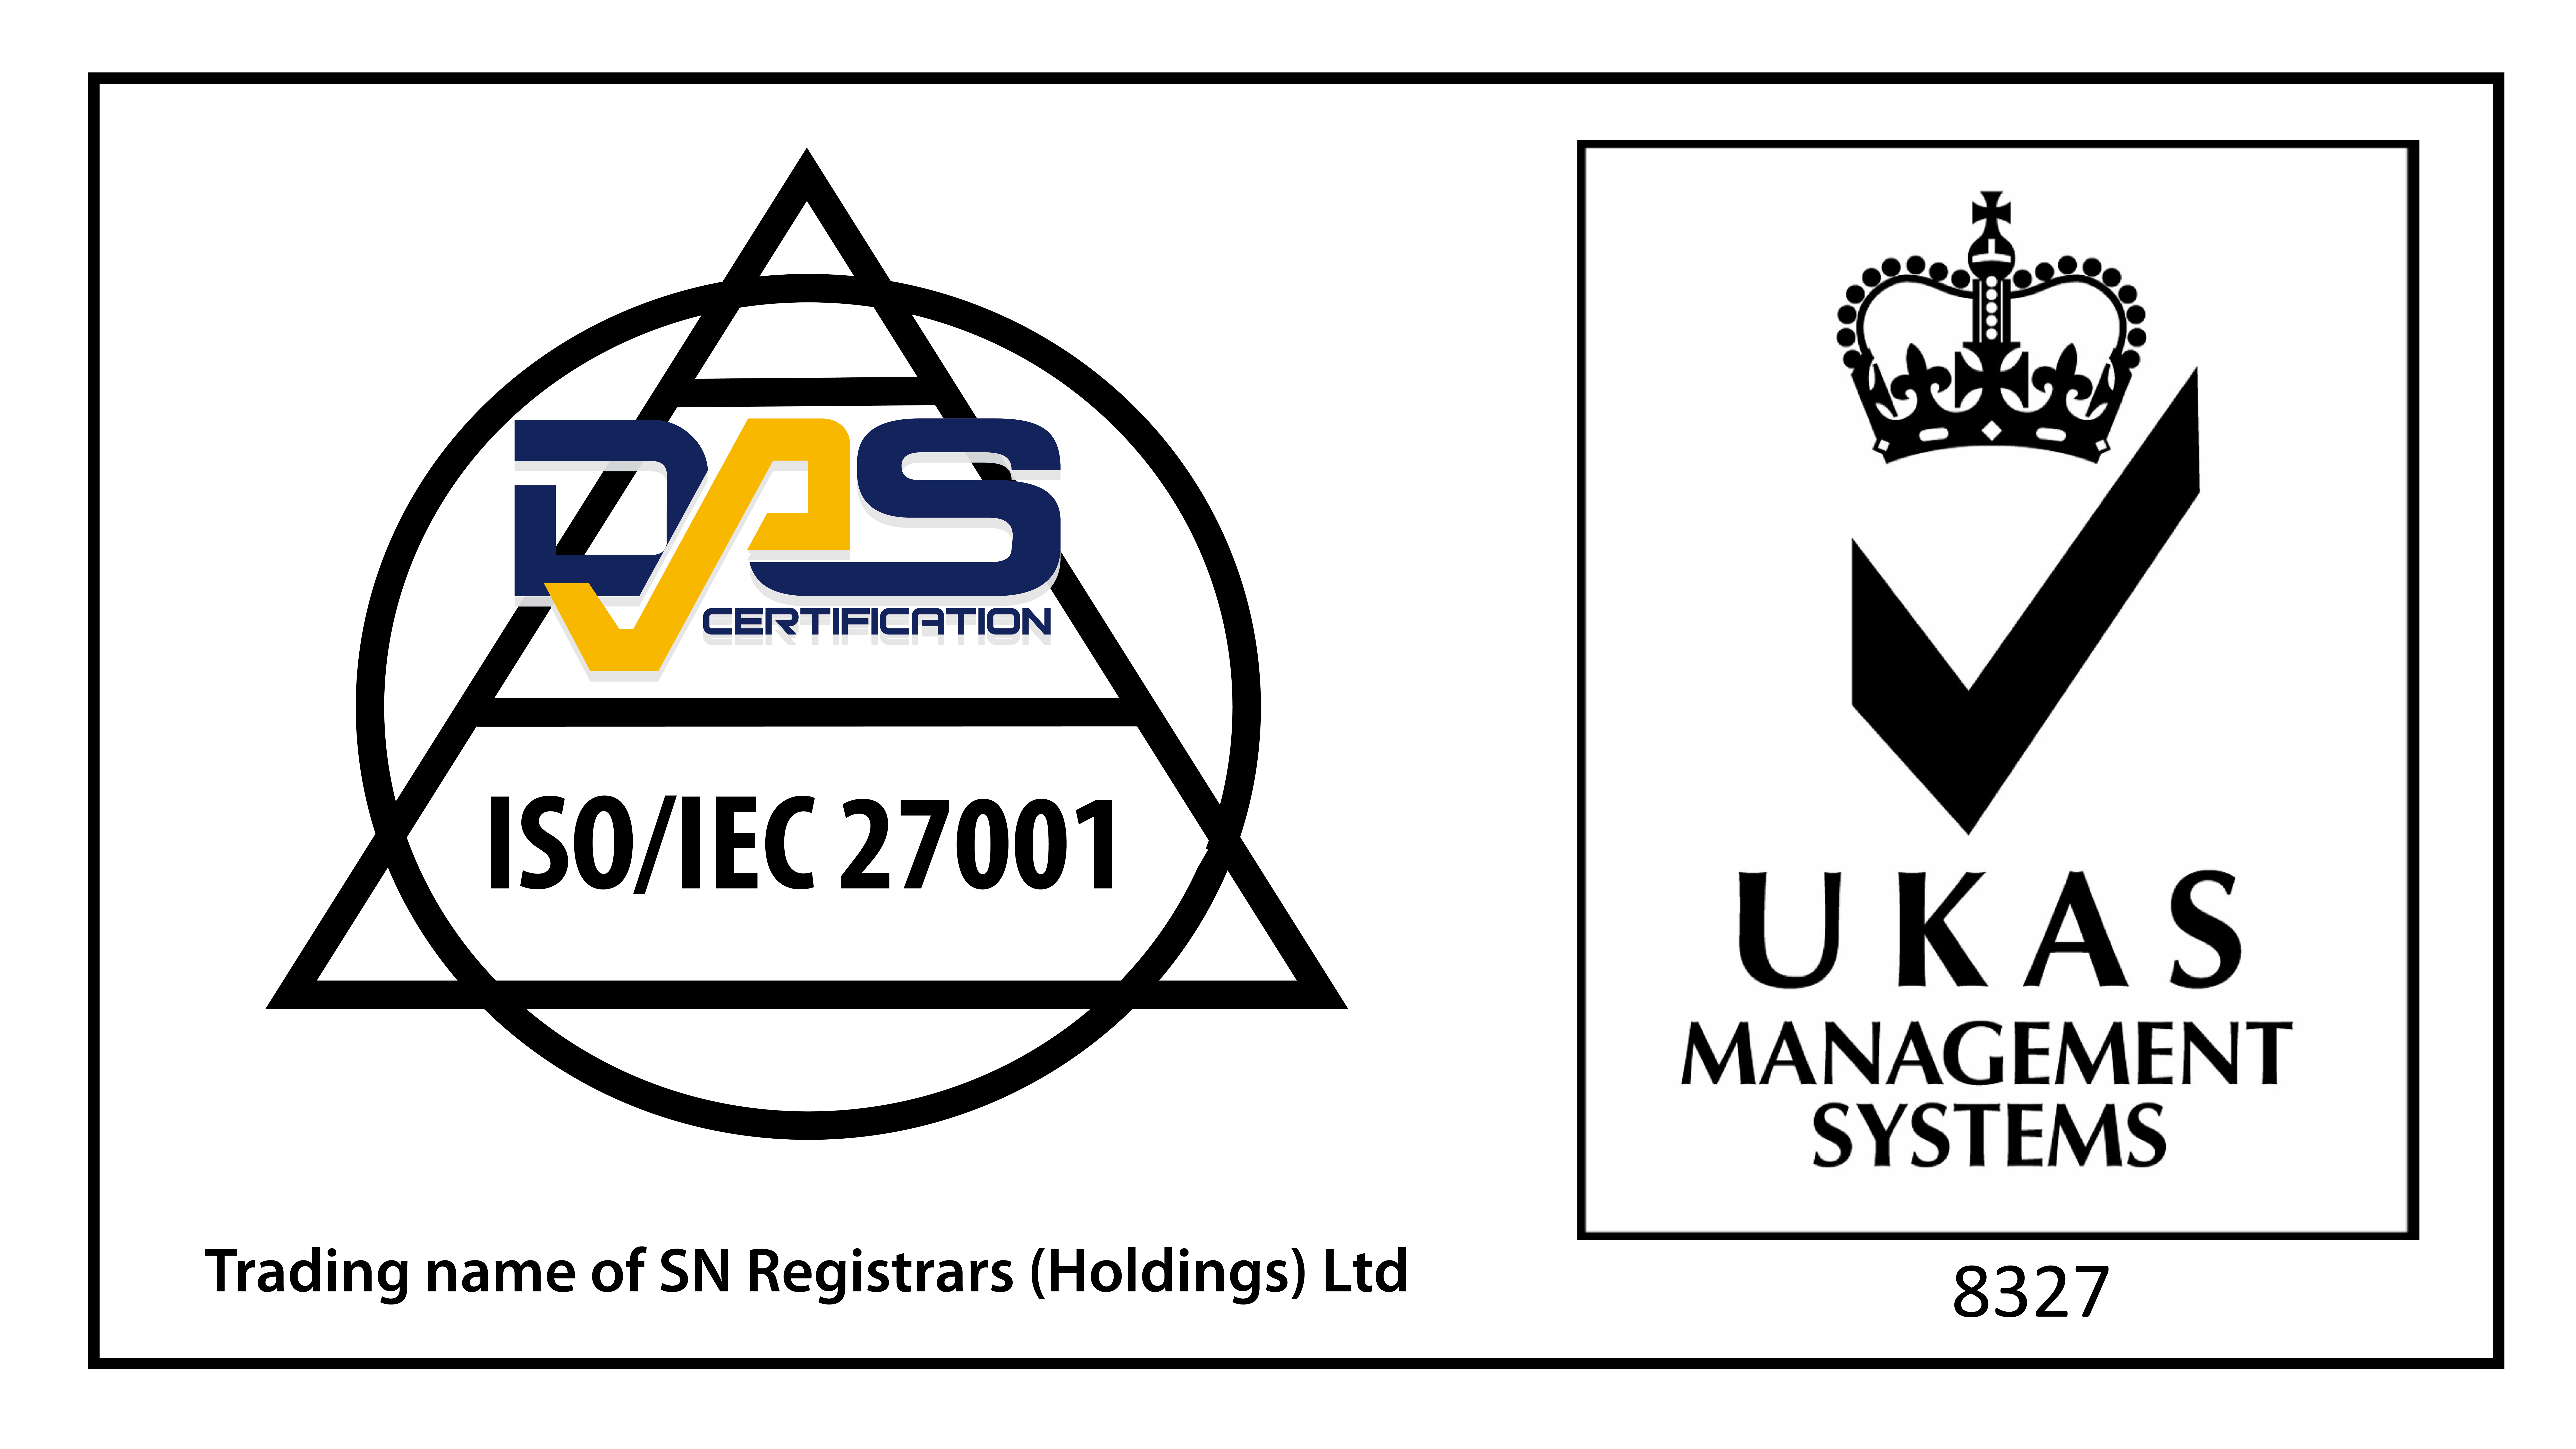 DAS ISO 27001 Information Security Management Certification Logo